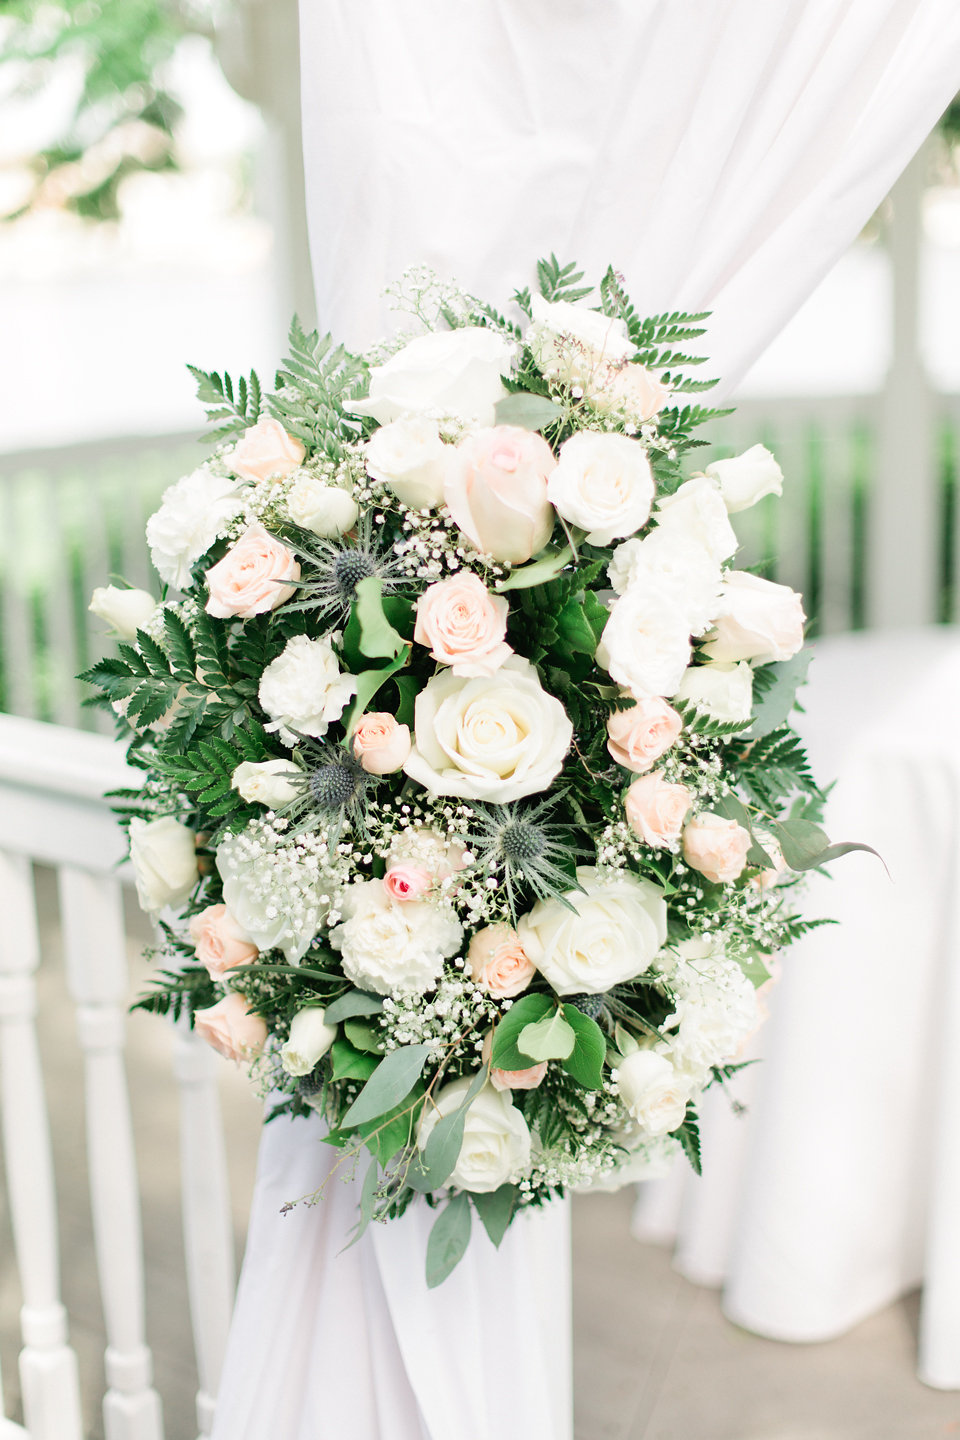 The ceremony floral arrangements included blush and white roses, baby's breath, blue thistle, and garden greenery.